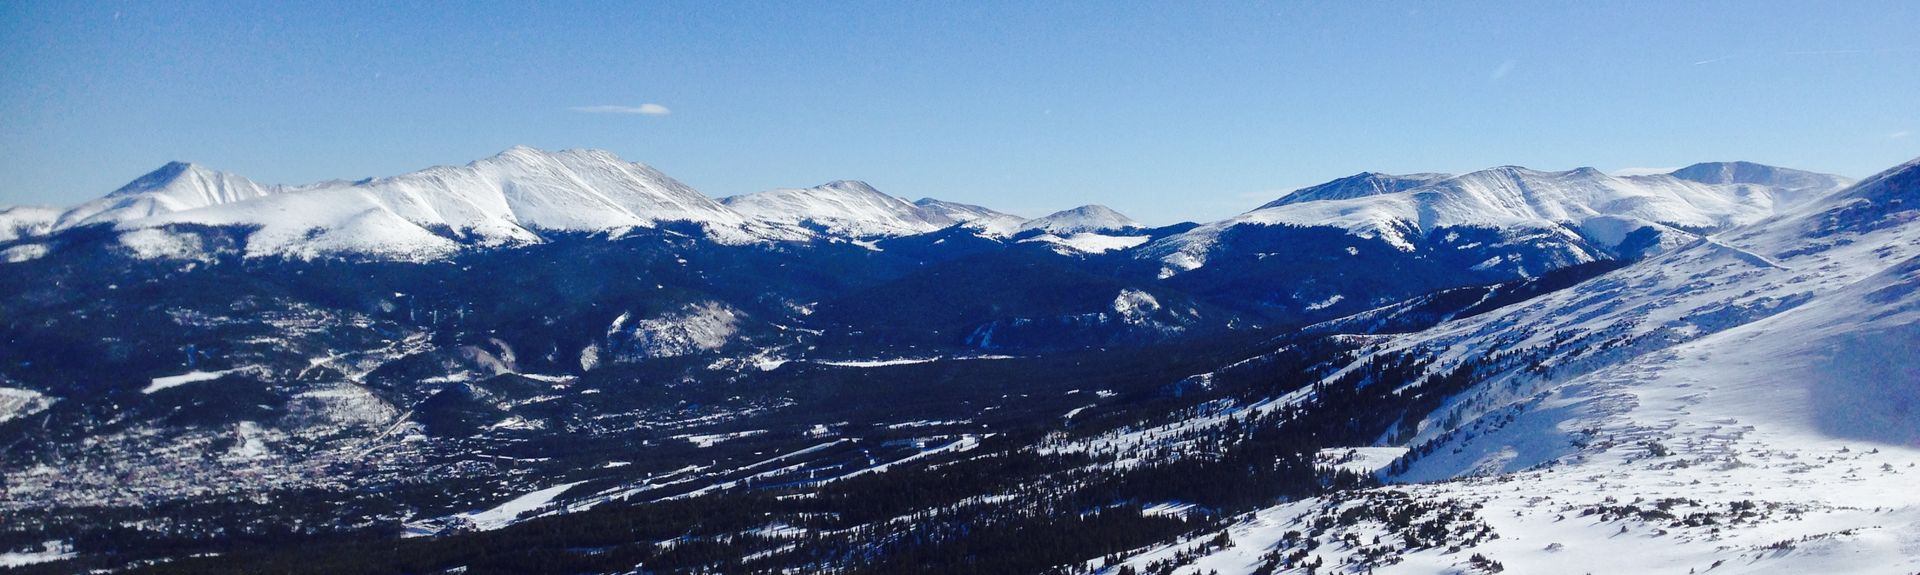 Sunbeam Estates, Breckenridge, Colorado, United States of America